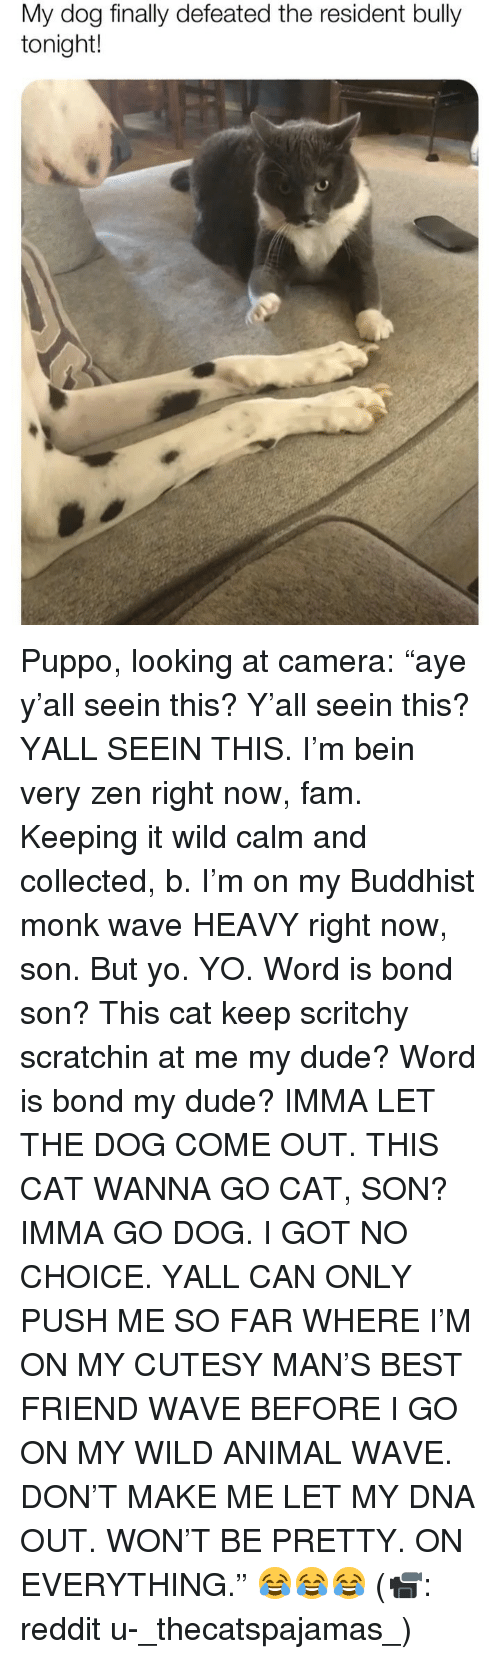 "Best Friend, Dude, and Fam: My dog finally defeated the resident bully  tonight! Puppo, looking at camera: ""aye y'all seein this? Y'all seein this? YALL SEEIN THIS. I'm bein very zen right now, fam. Keeping it wild calm and collected, b. I'm on my Buddhist monk wave HEAVY right now, son. But yo. YO. Word is bond son? This cat keep scritchy scratchin at me my dude? Word is bond my dude? IMMA LET THE DOG COME OUT. THIS CAT WANNA GO CAT, SON? IMMA GO DOG. I GOT NO CHOICE. YALL CAN ONLY PUSH ME SO FAR WHERE I'M ON MY CUTESY MAN'S BEST FRIEND WAVE BEFORE I GO ON MY WILD ANIMAL WAVE. DON'T MAKE ME LET MY DNA OUT. WON'T BE PRETTY. ON EVERYTHING."" 😂😂😂 (📹: reddit u-_thecatspajamas_)"